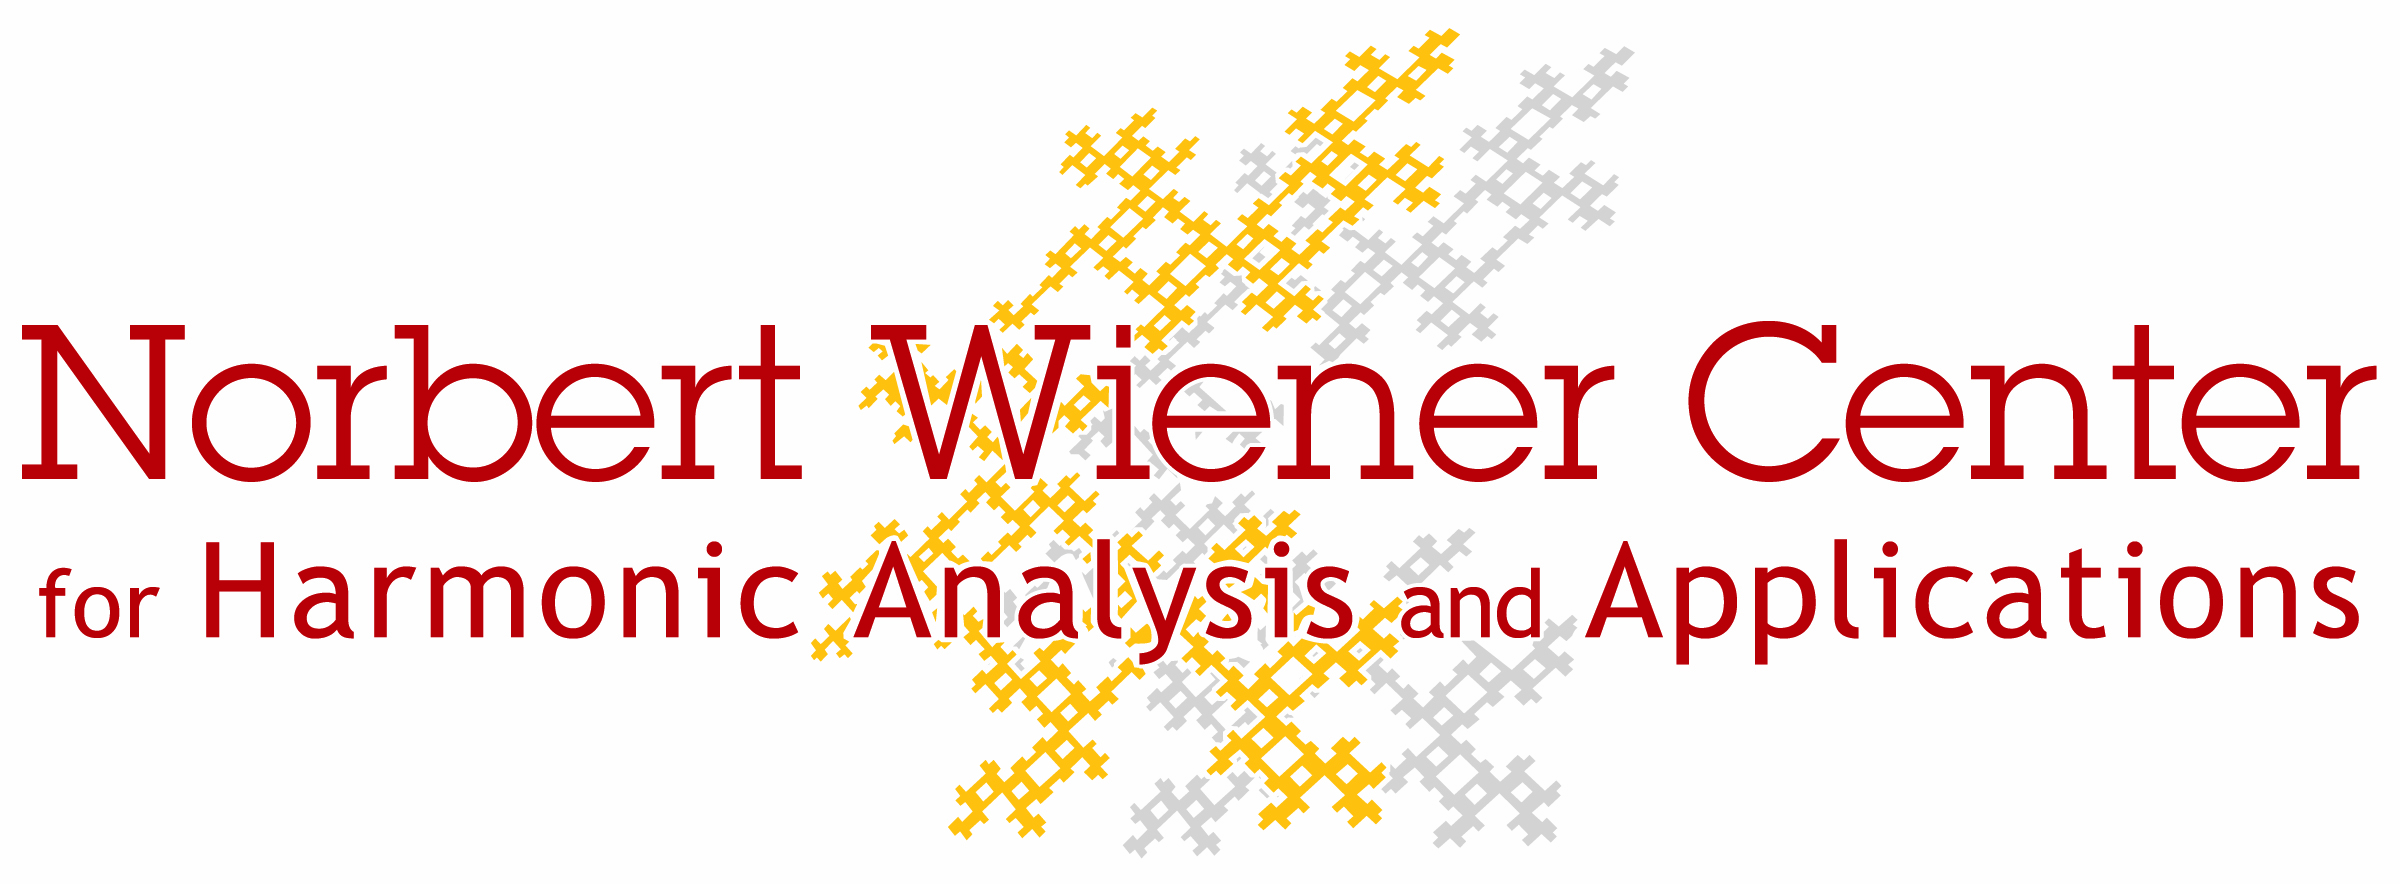 6%2f61%2fnorbert wiener center logo